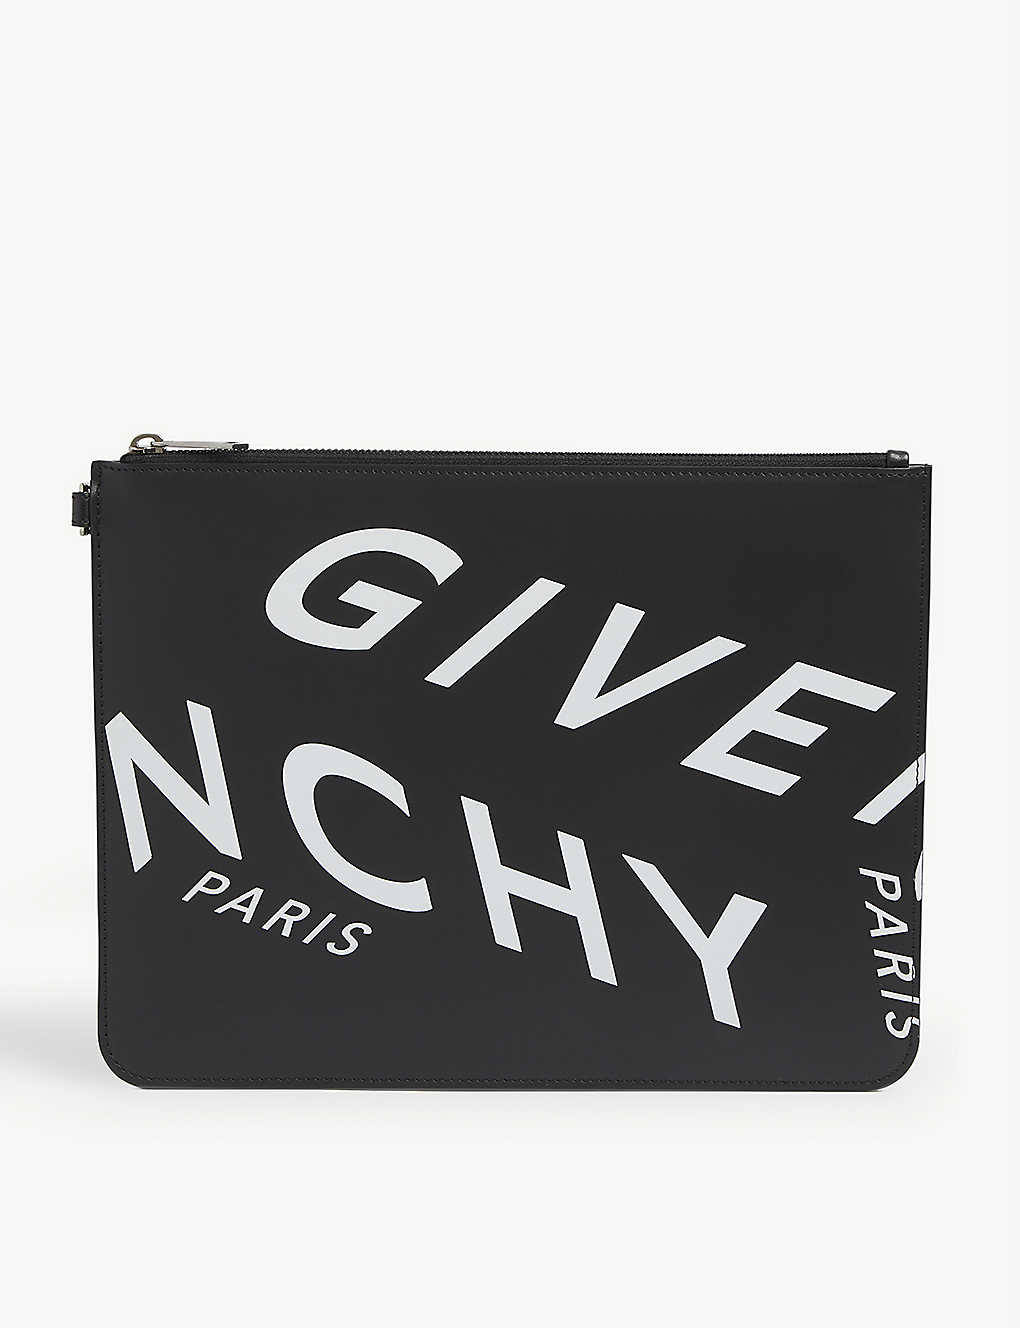 GIVENCHY: Refracted logo-print leather pouch